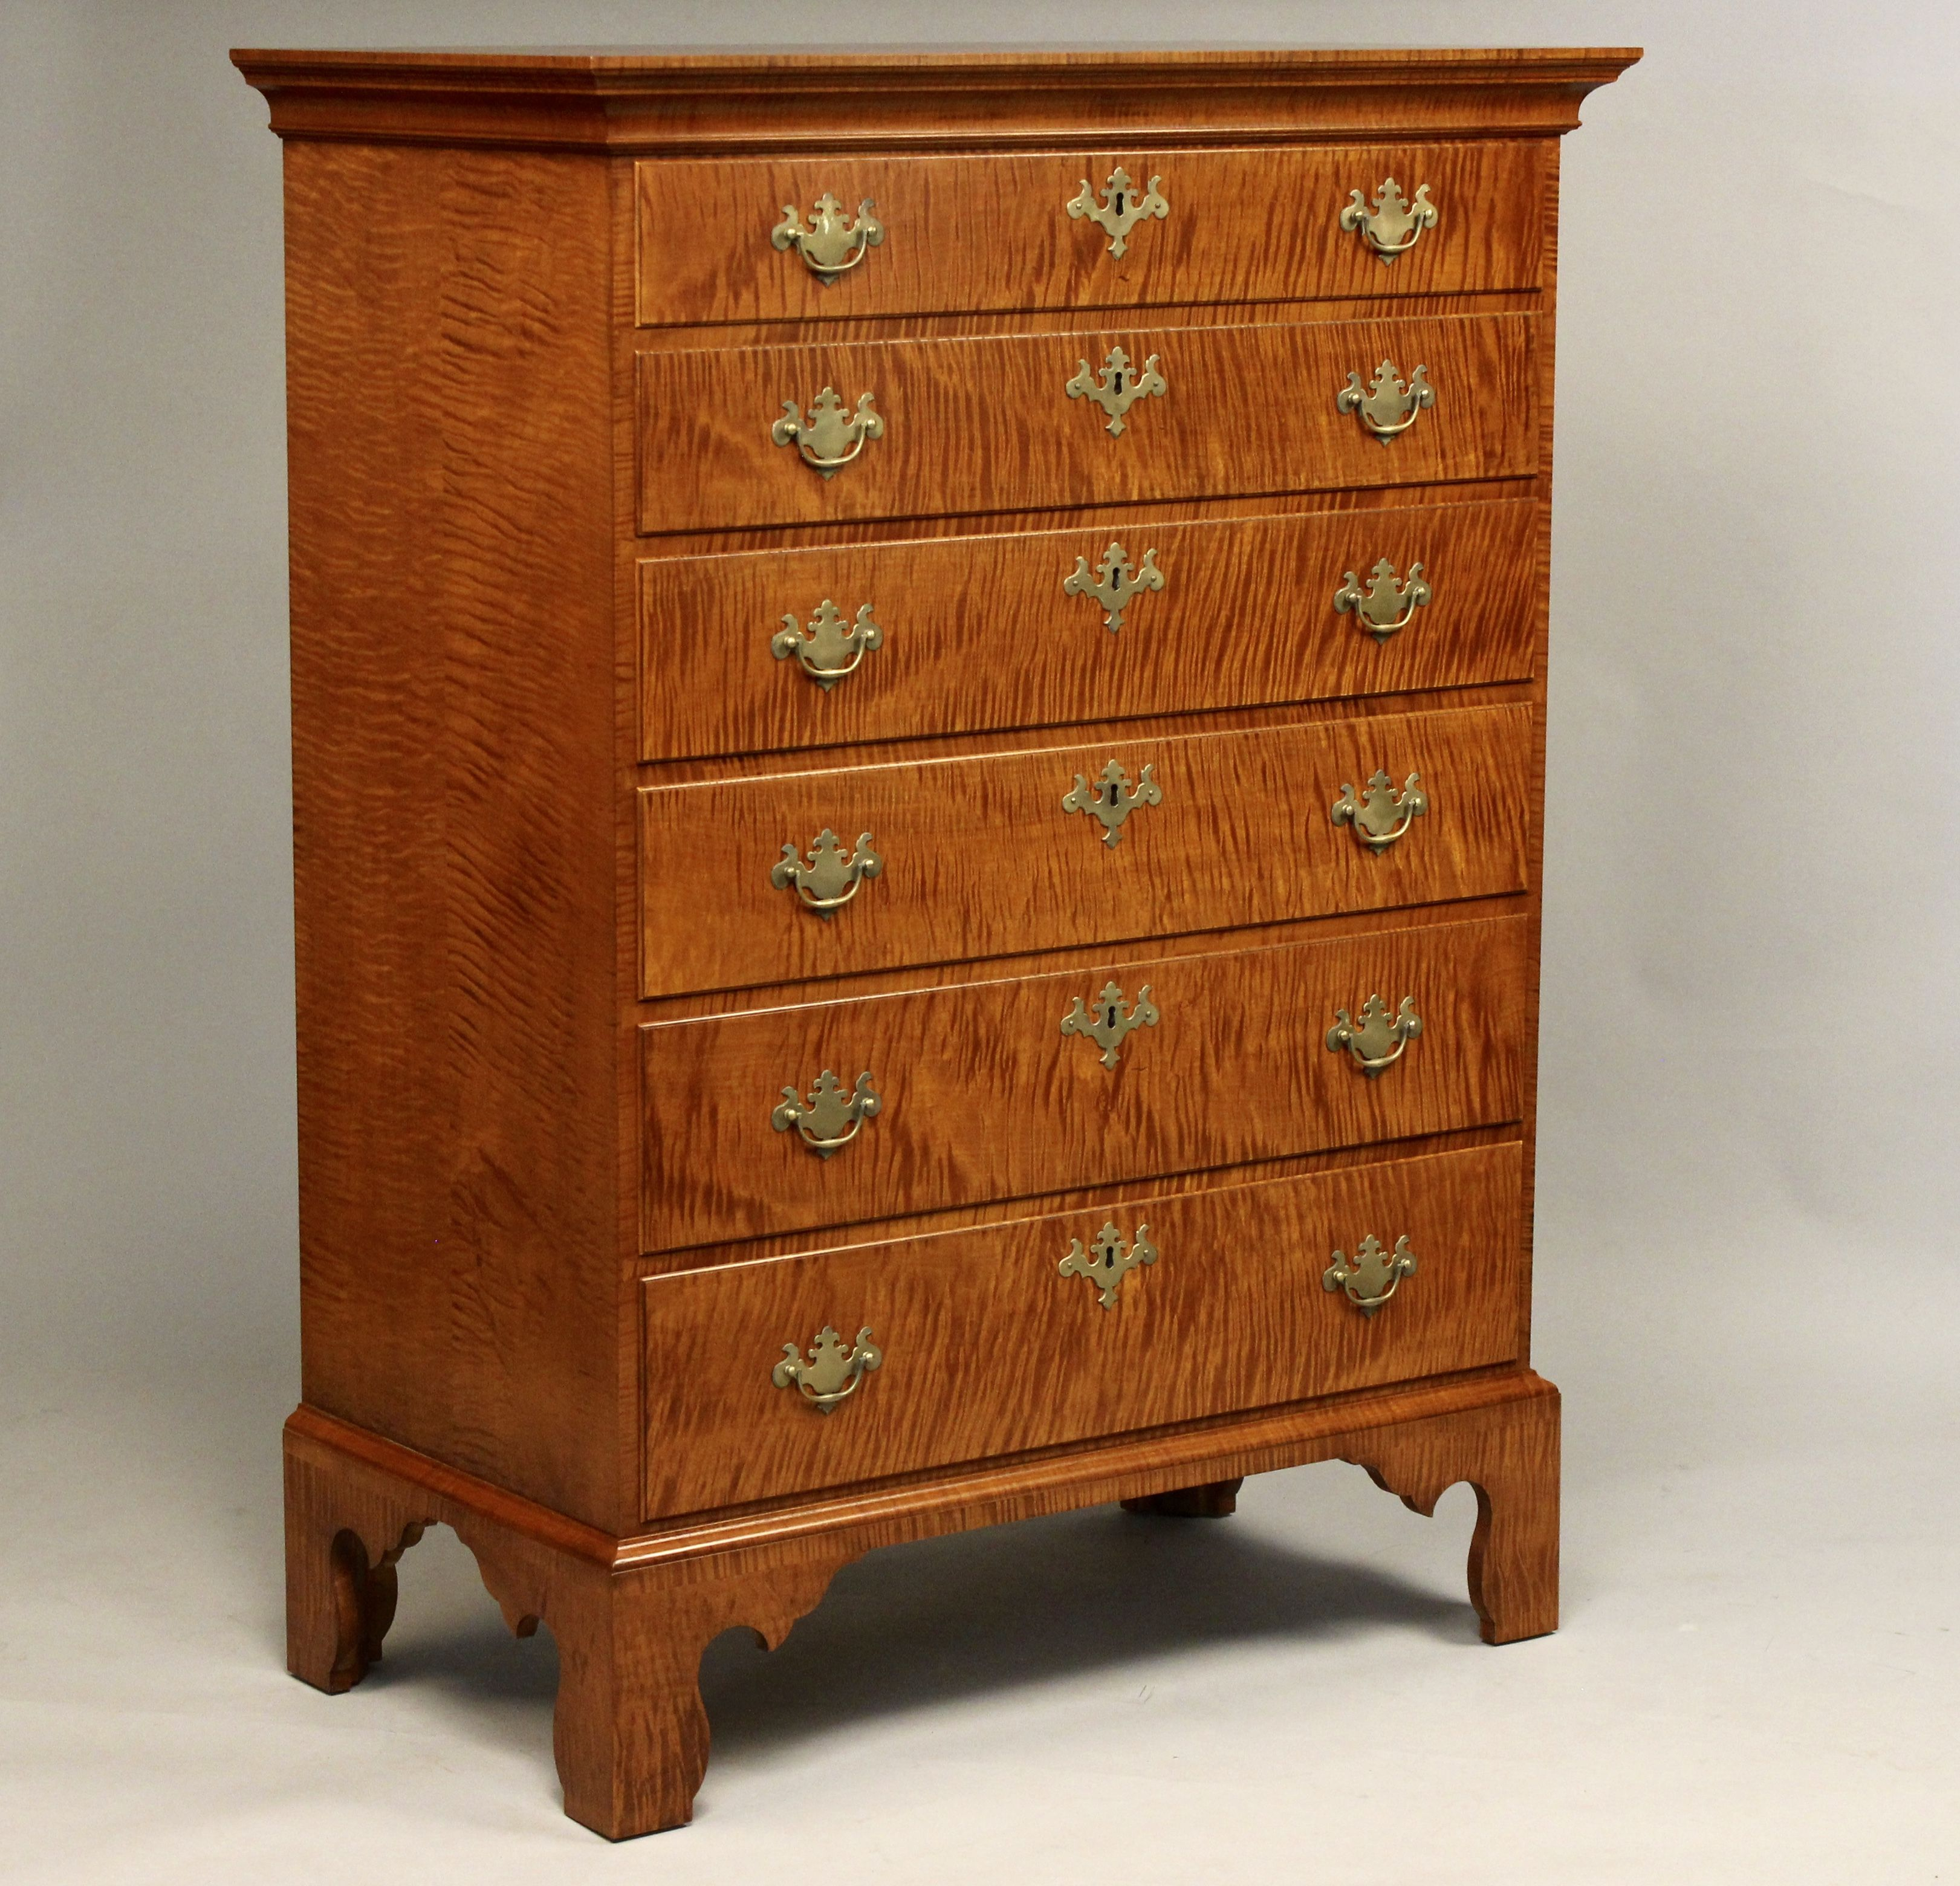 Tiger Maple Chest Of Drawers Woodworking Courses Woodworking Woodworking School